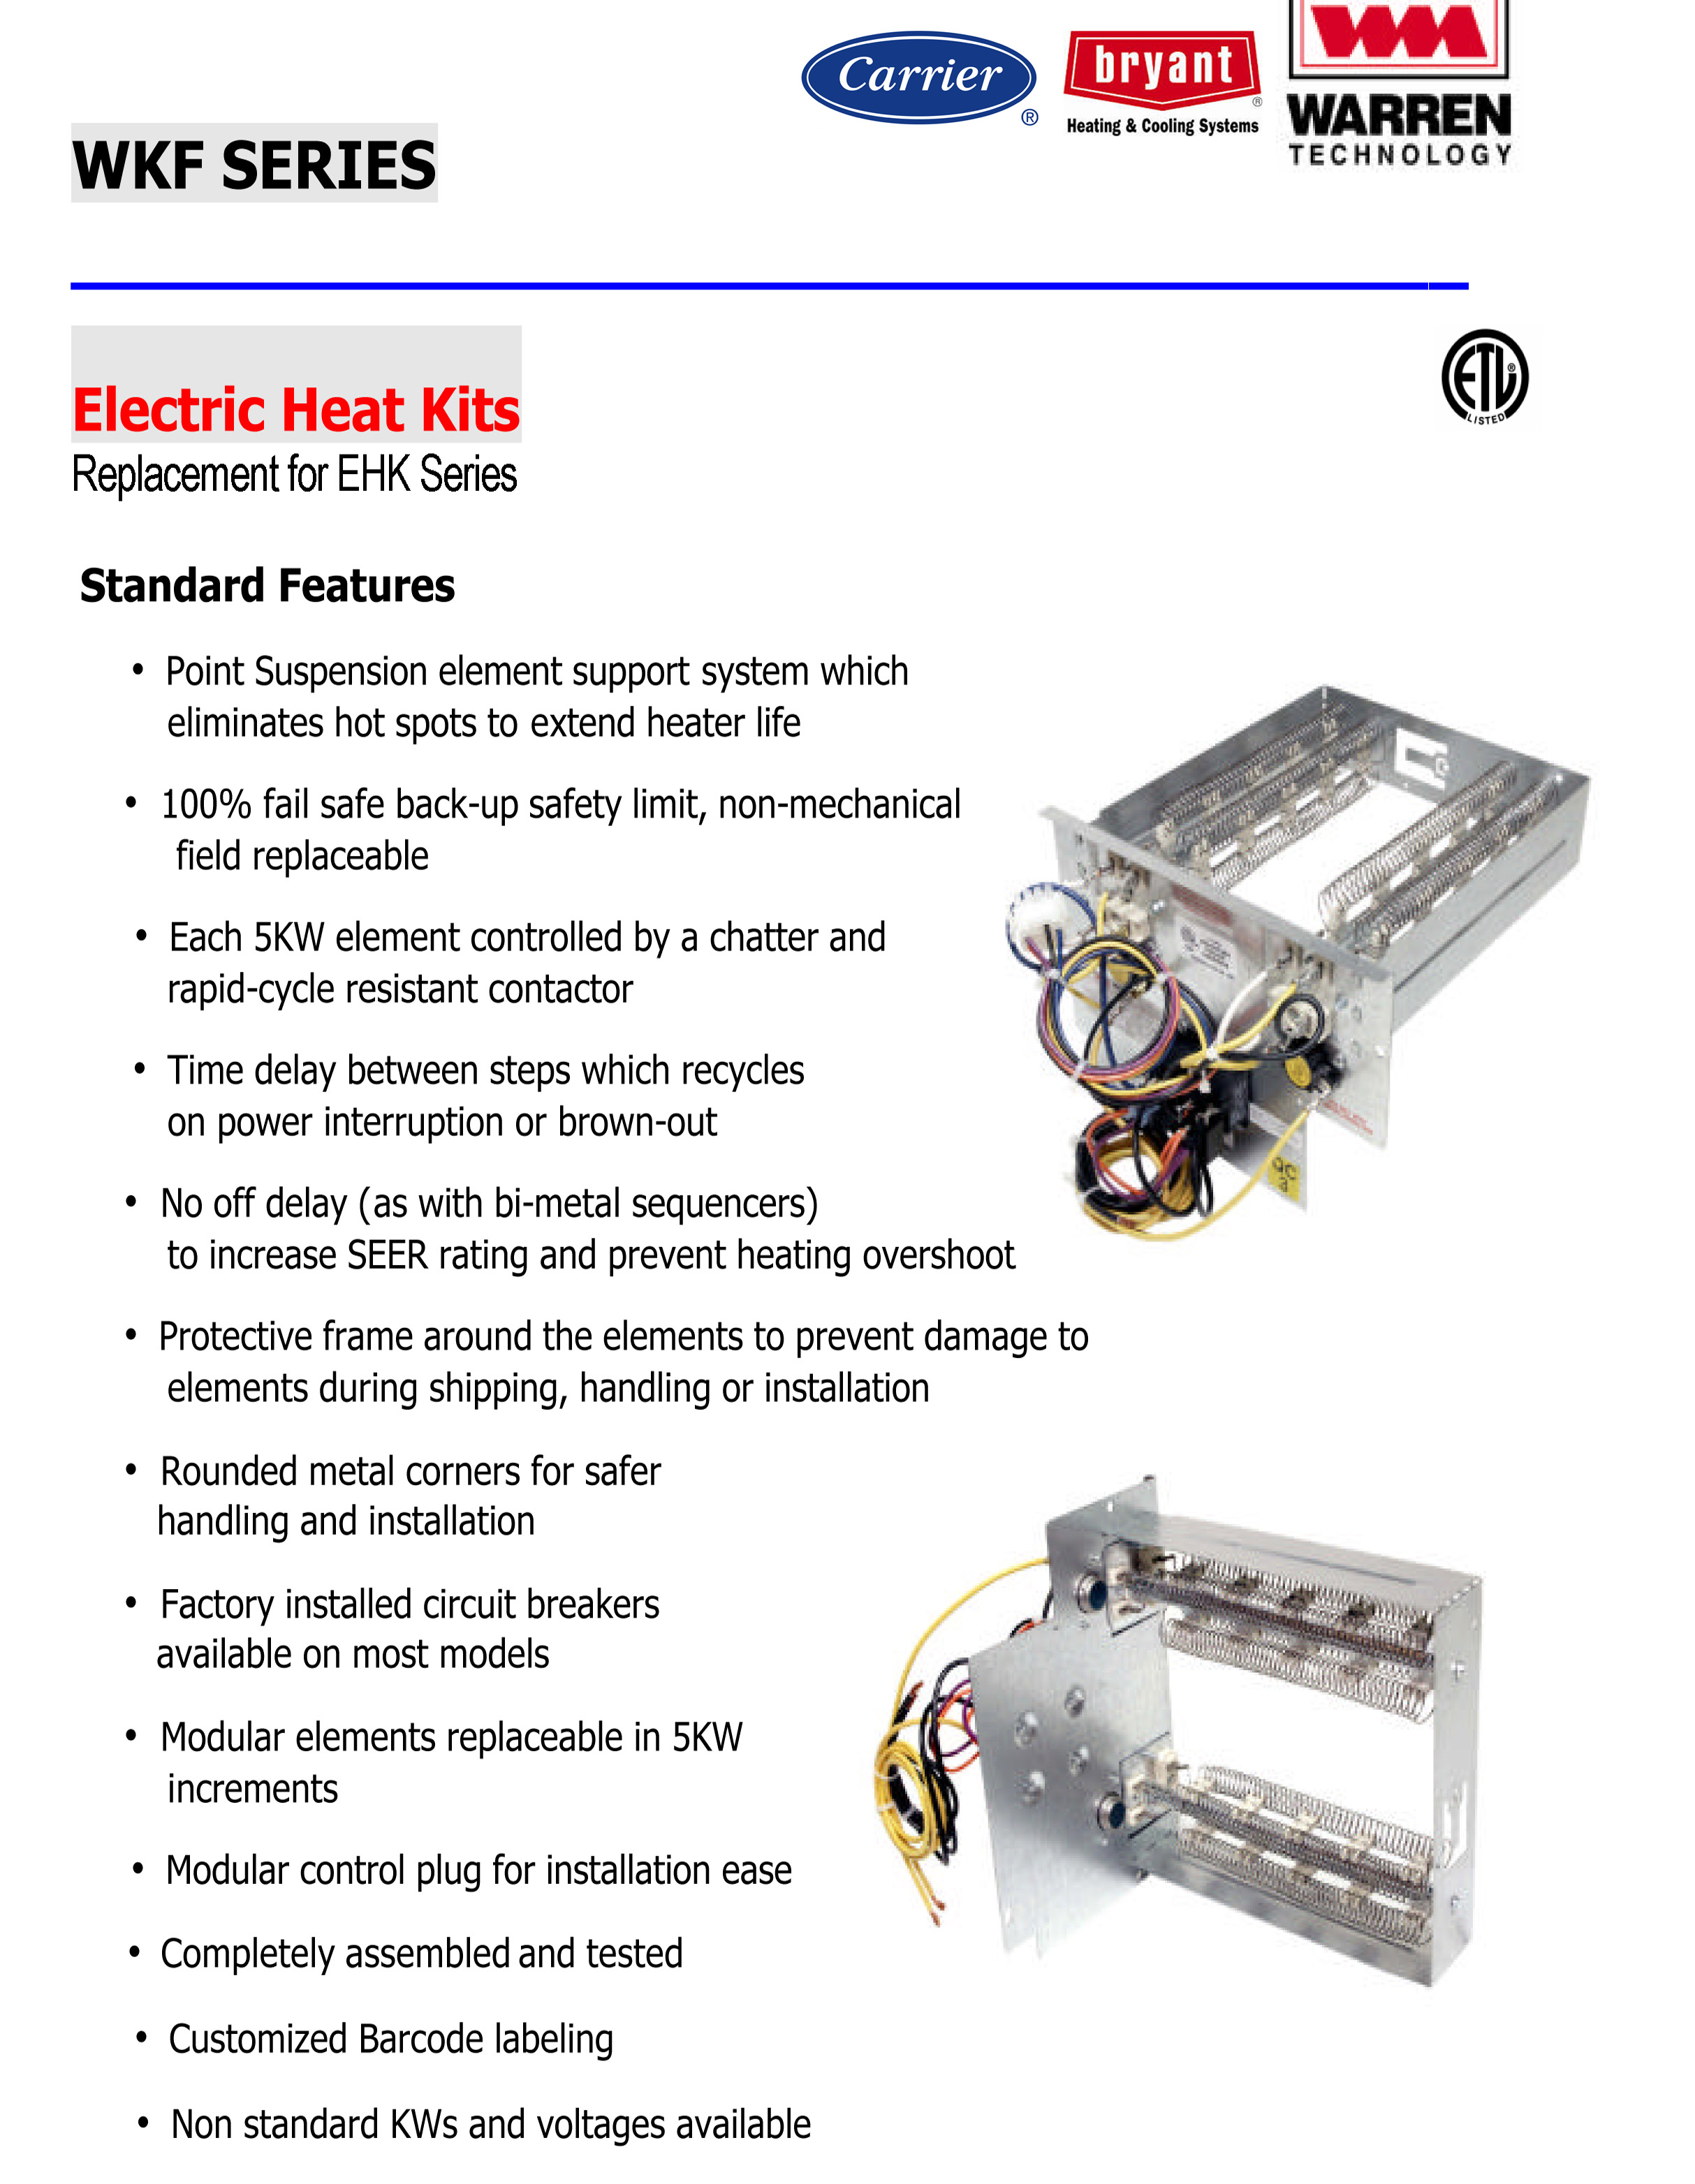 15 kw heat for carrier bryant payne air handlers click for models wkf1502